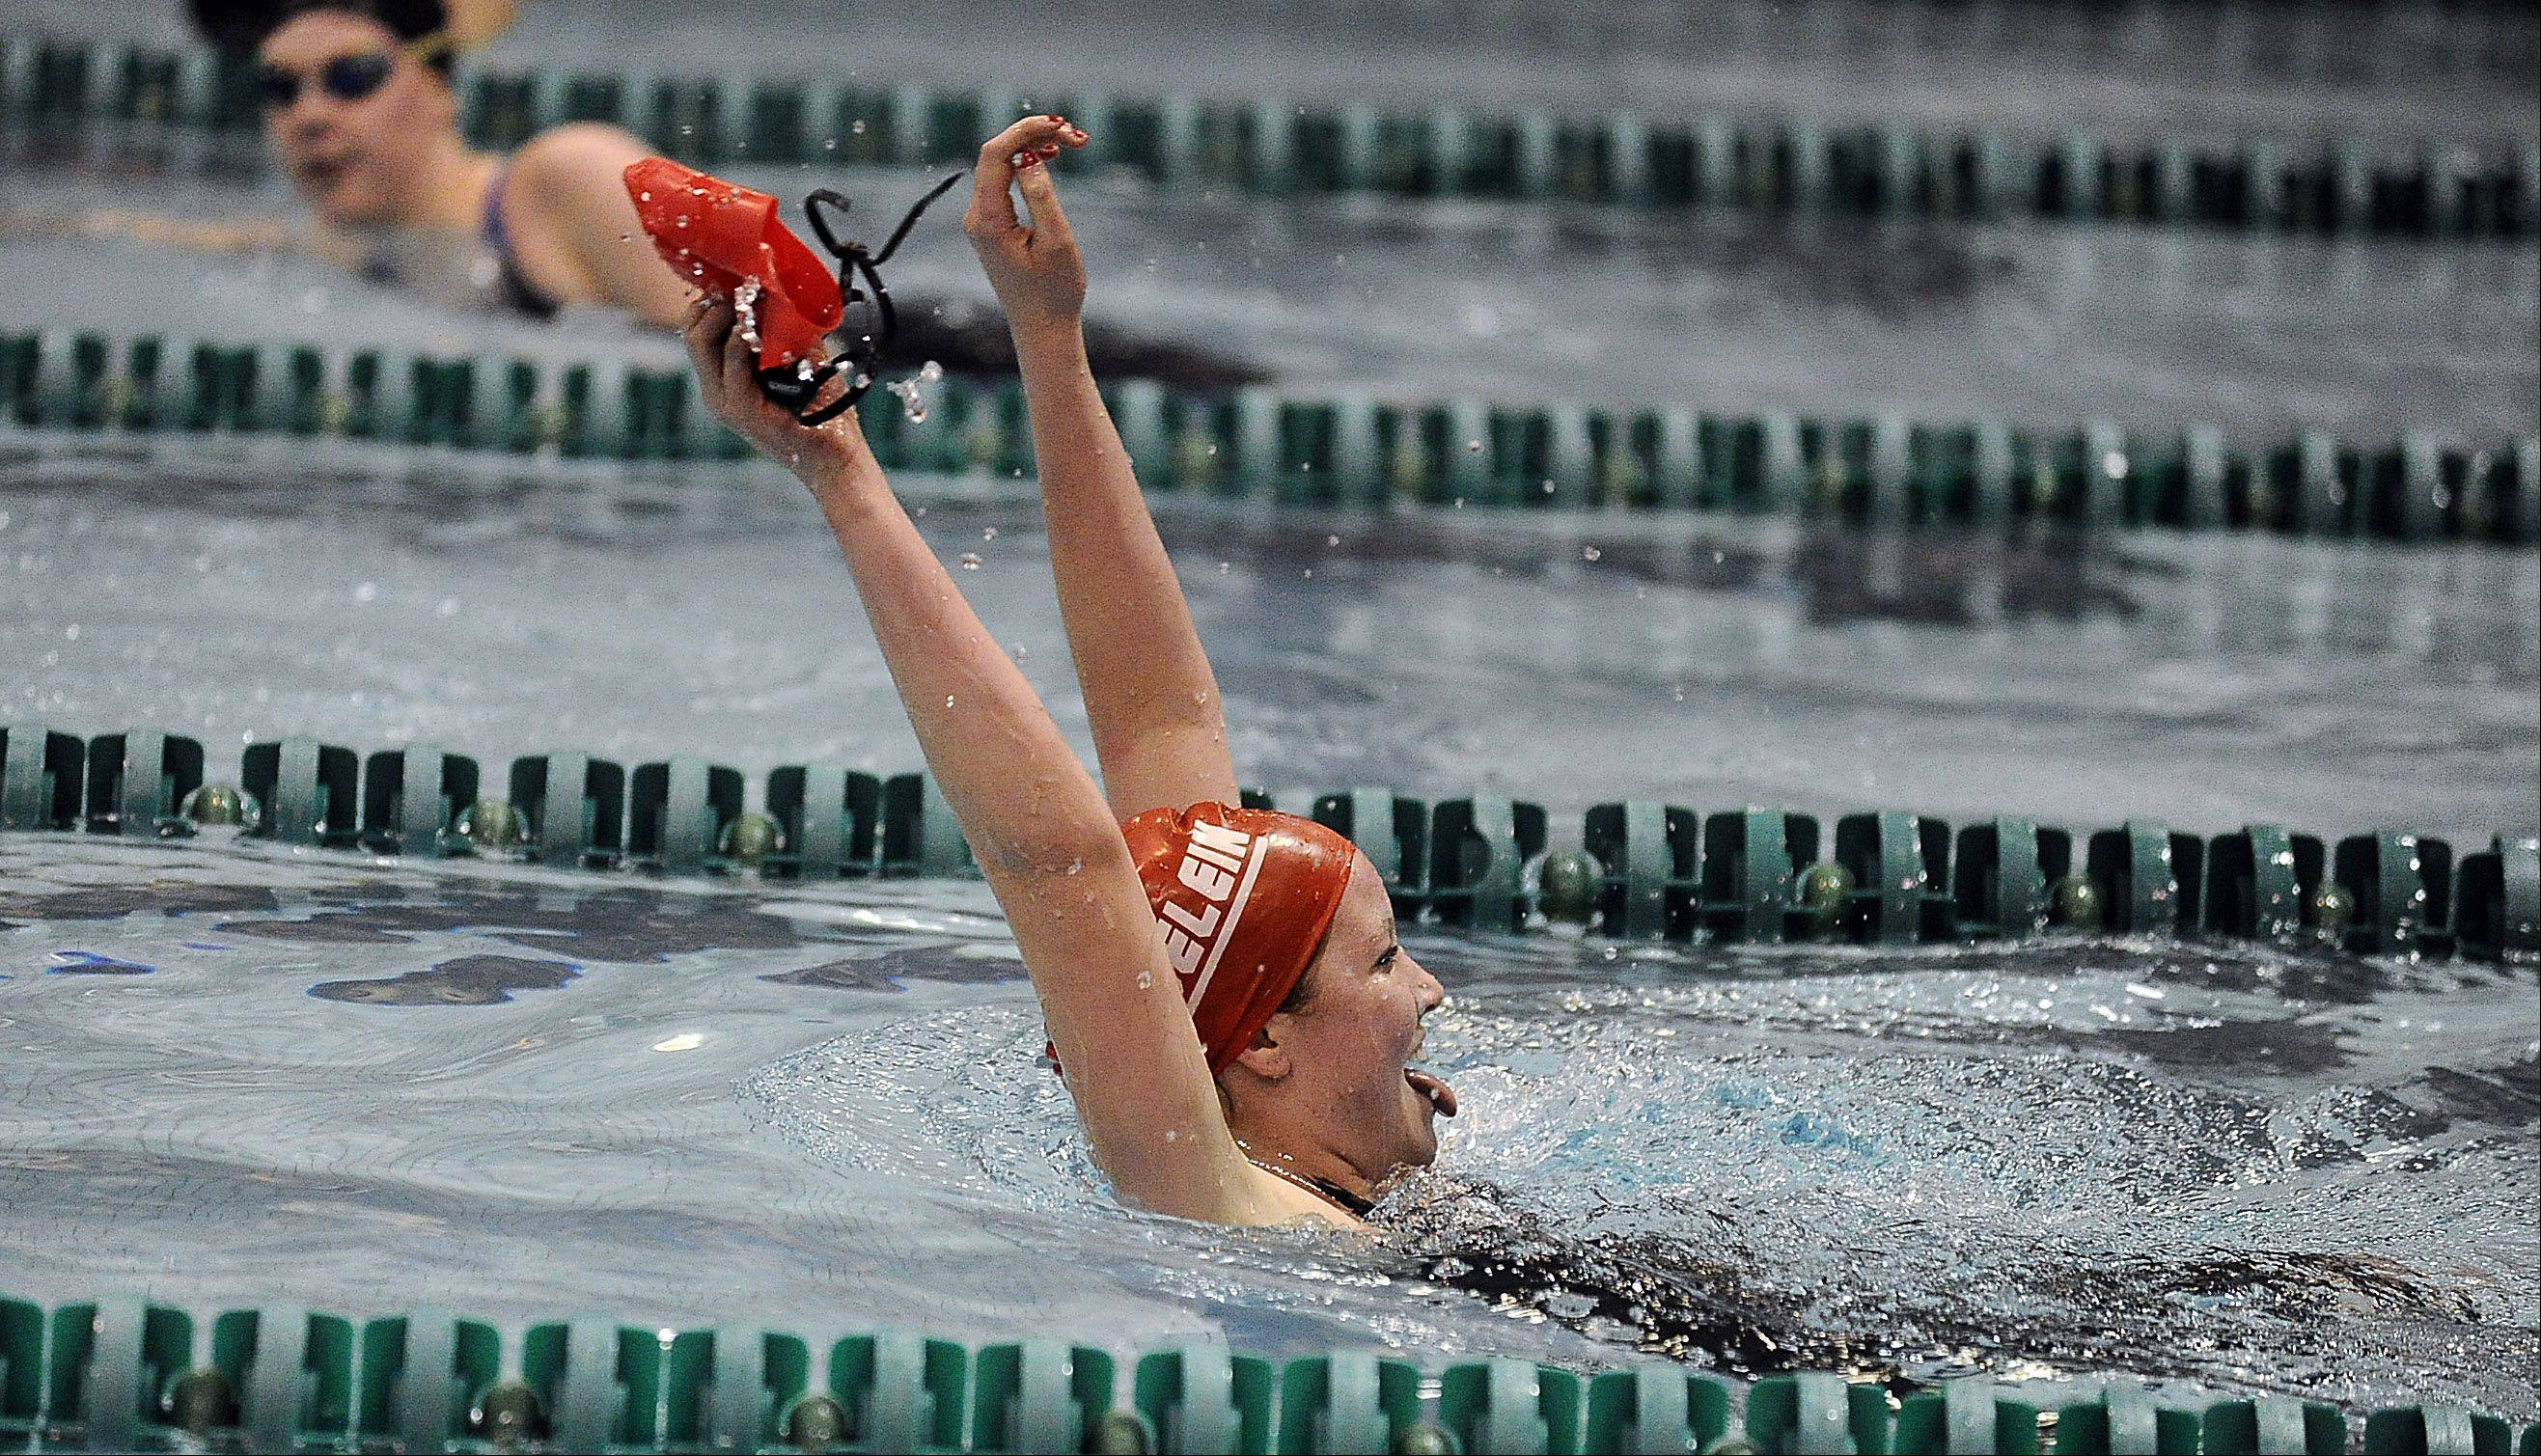 Mundelein's Erin Falconer celebrates after completing the 200-yd freestyle at the girls state finals prelims at New Trier High School on Friday.